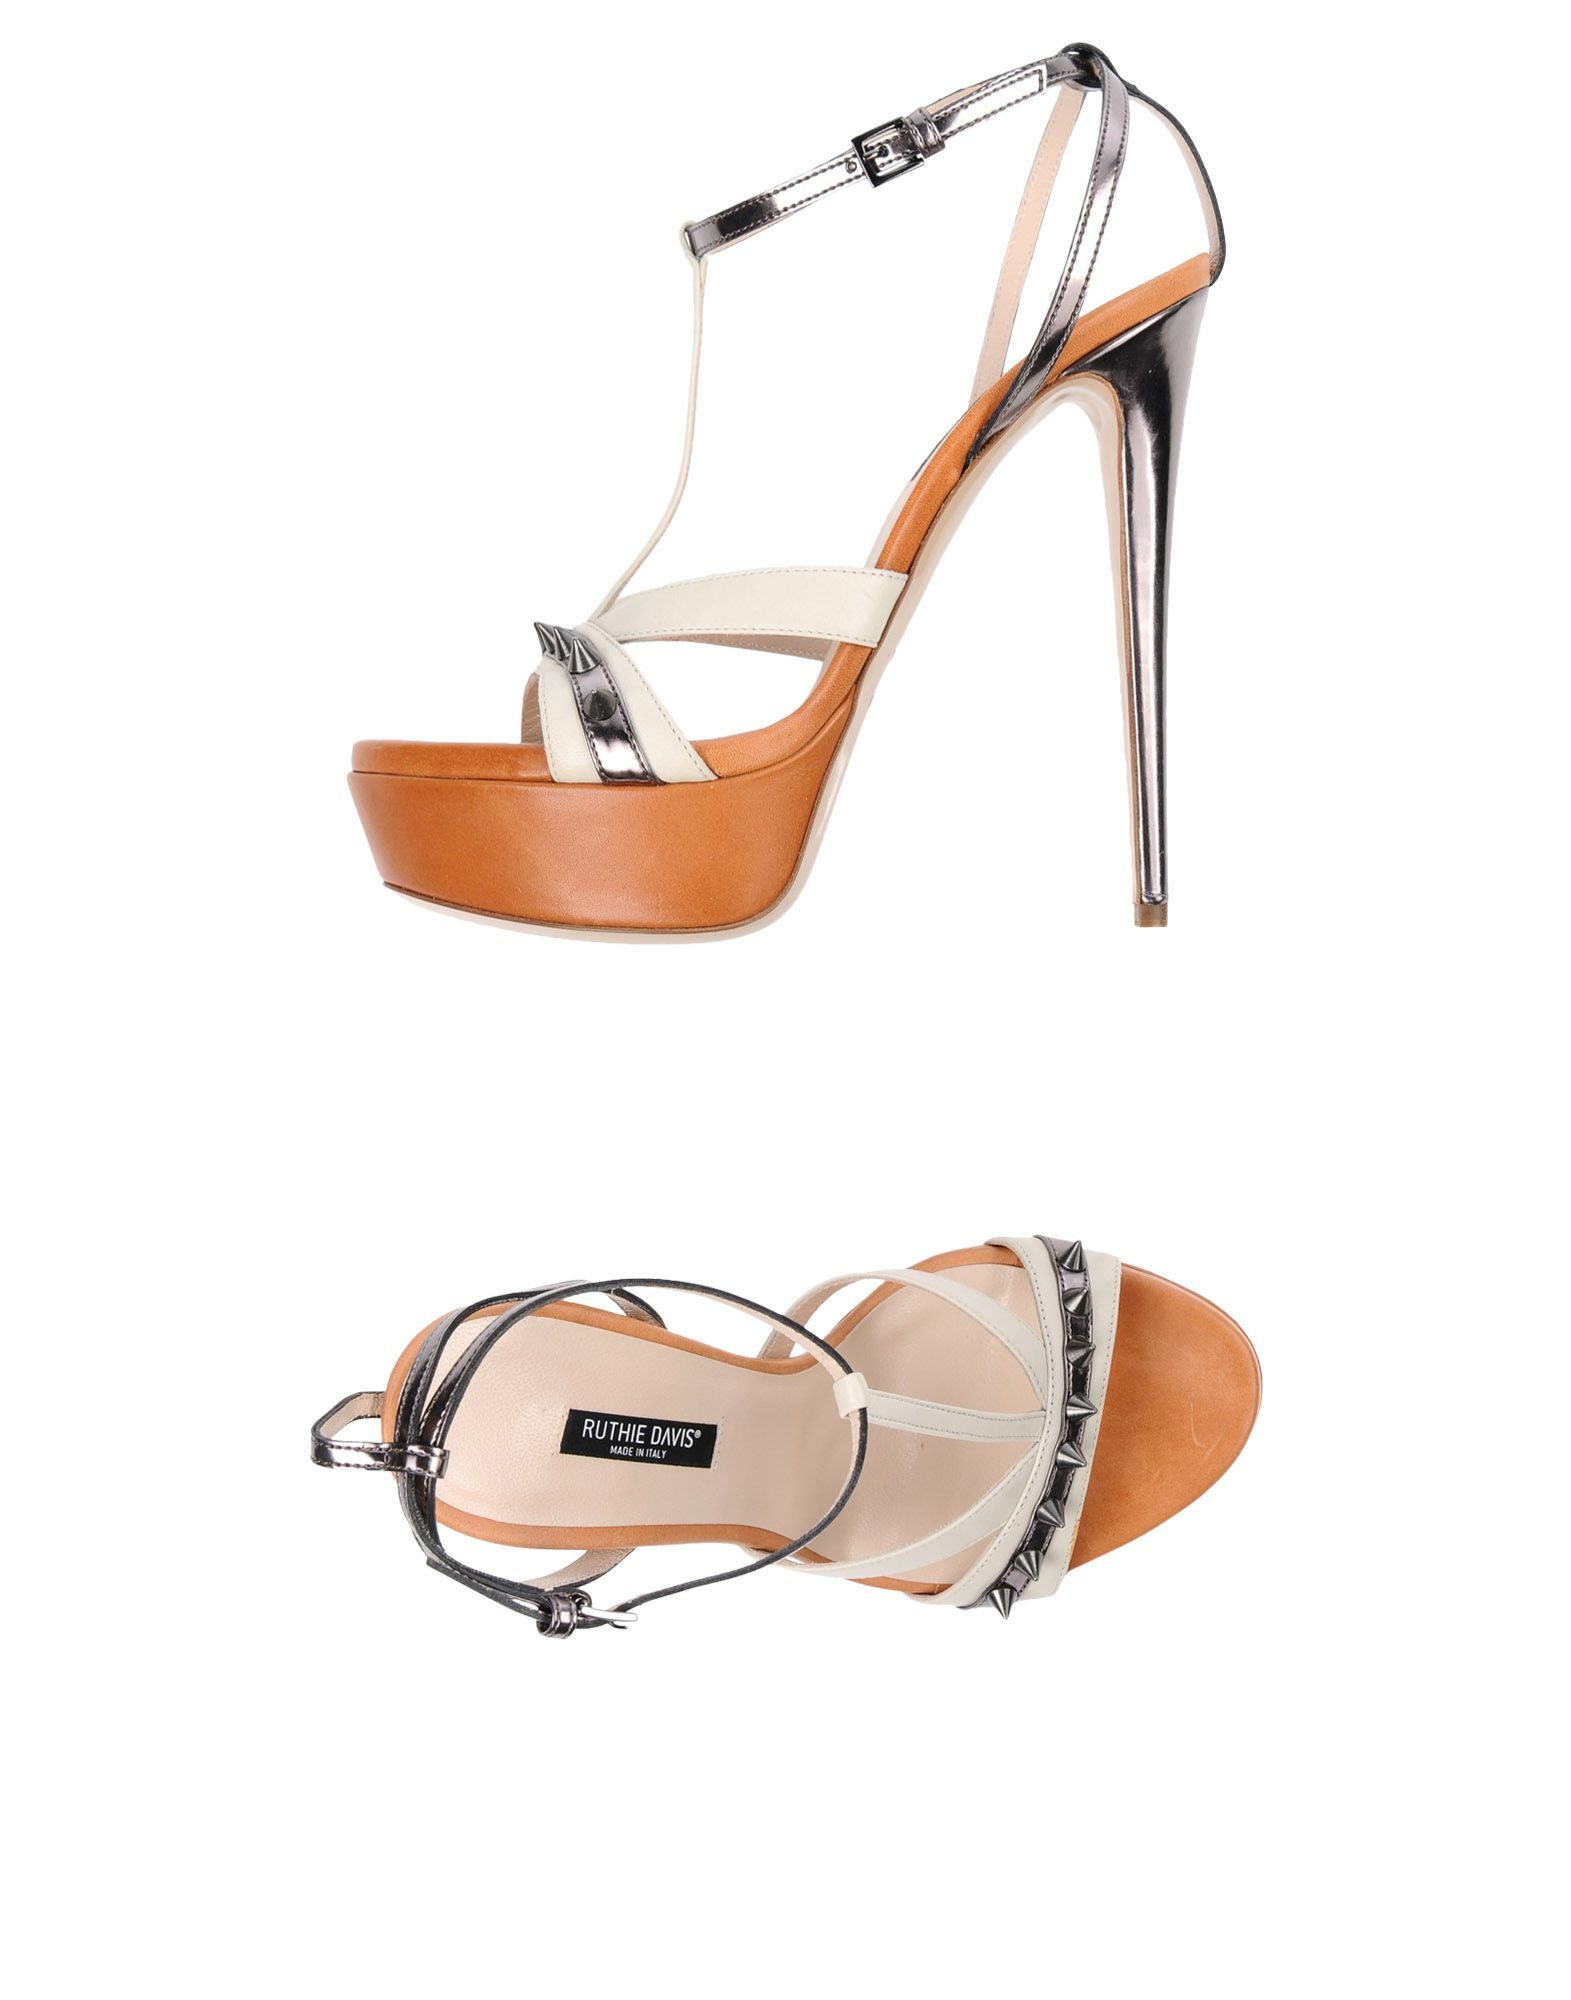 RUTHIE DAVIS Sandals in Ivory